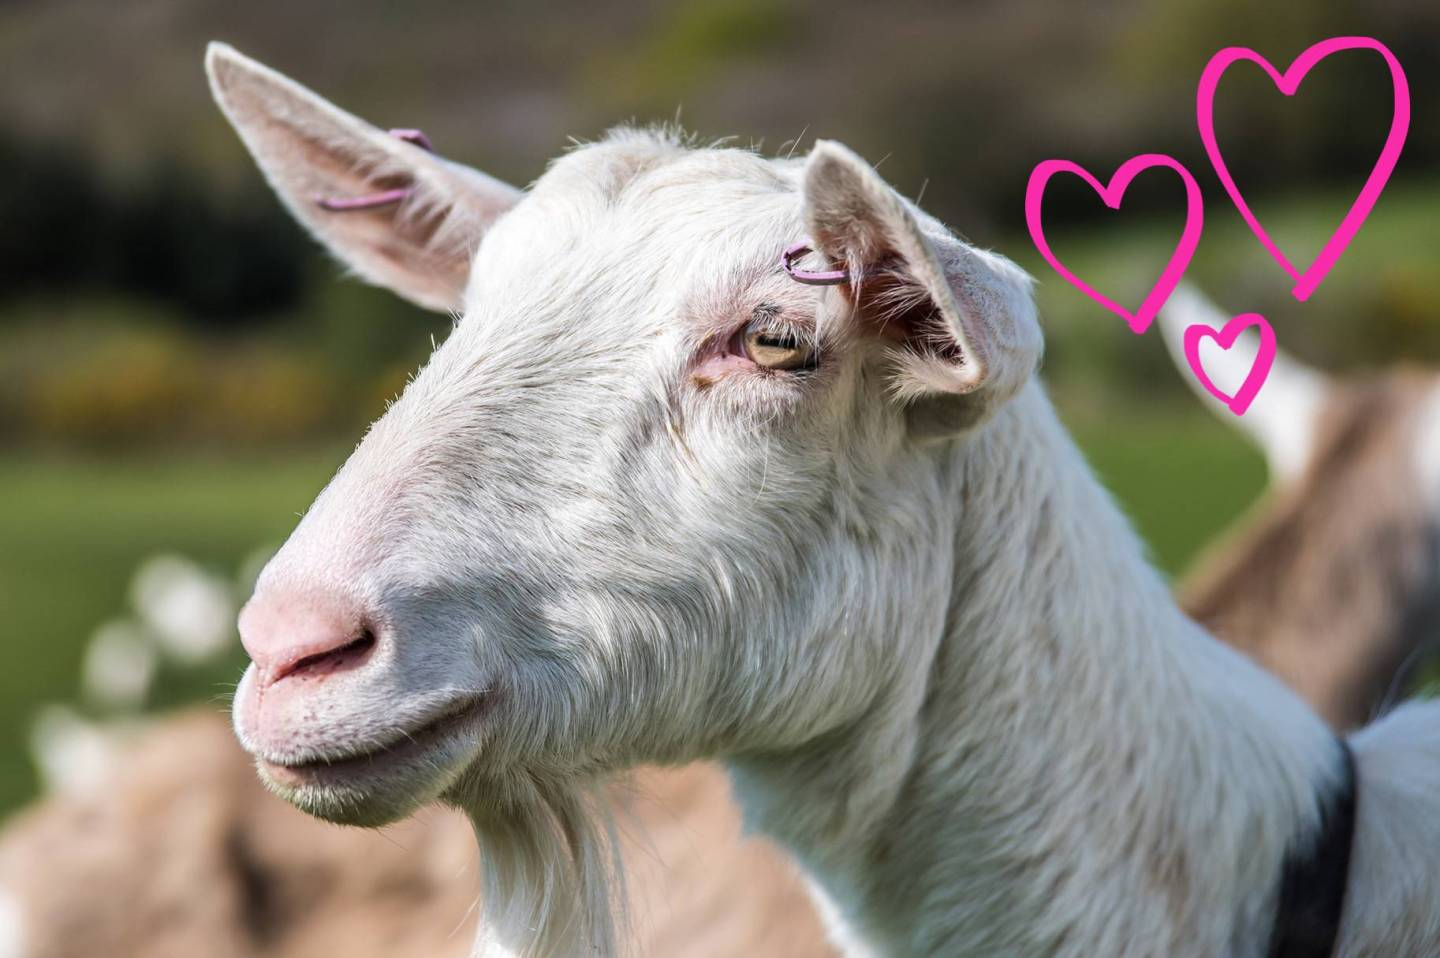 Could a goat help treat your rosacea?